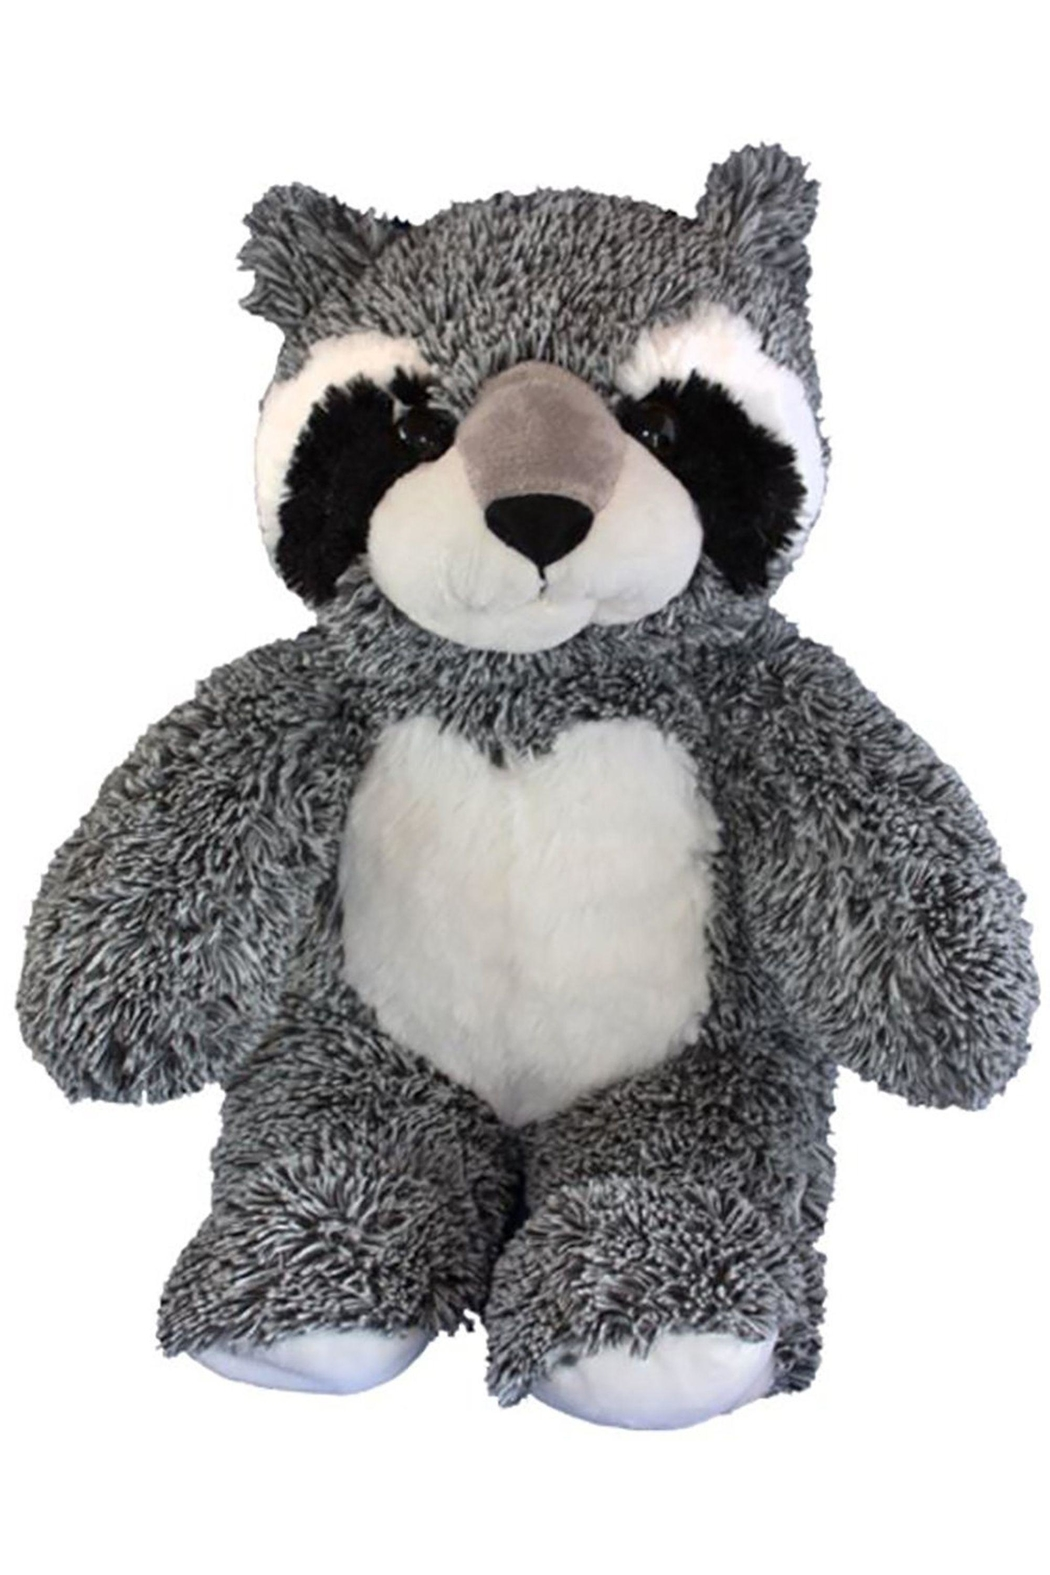 Teddy Mountain Bandit The Raccoon from Nebraska by Teddy